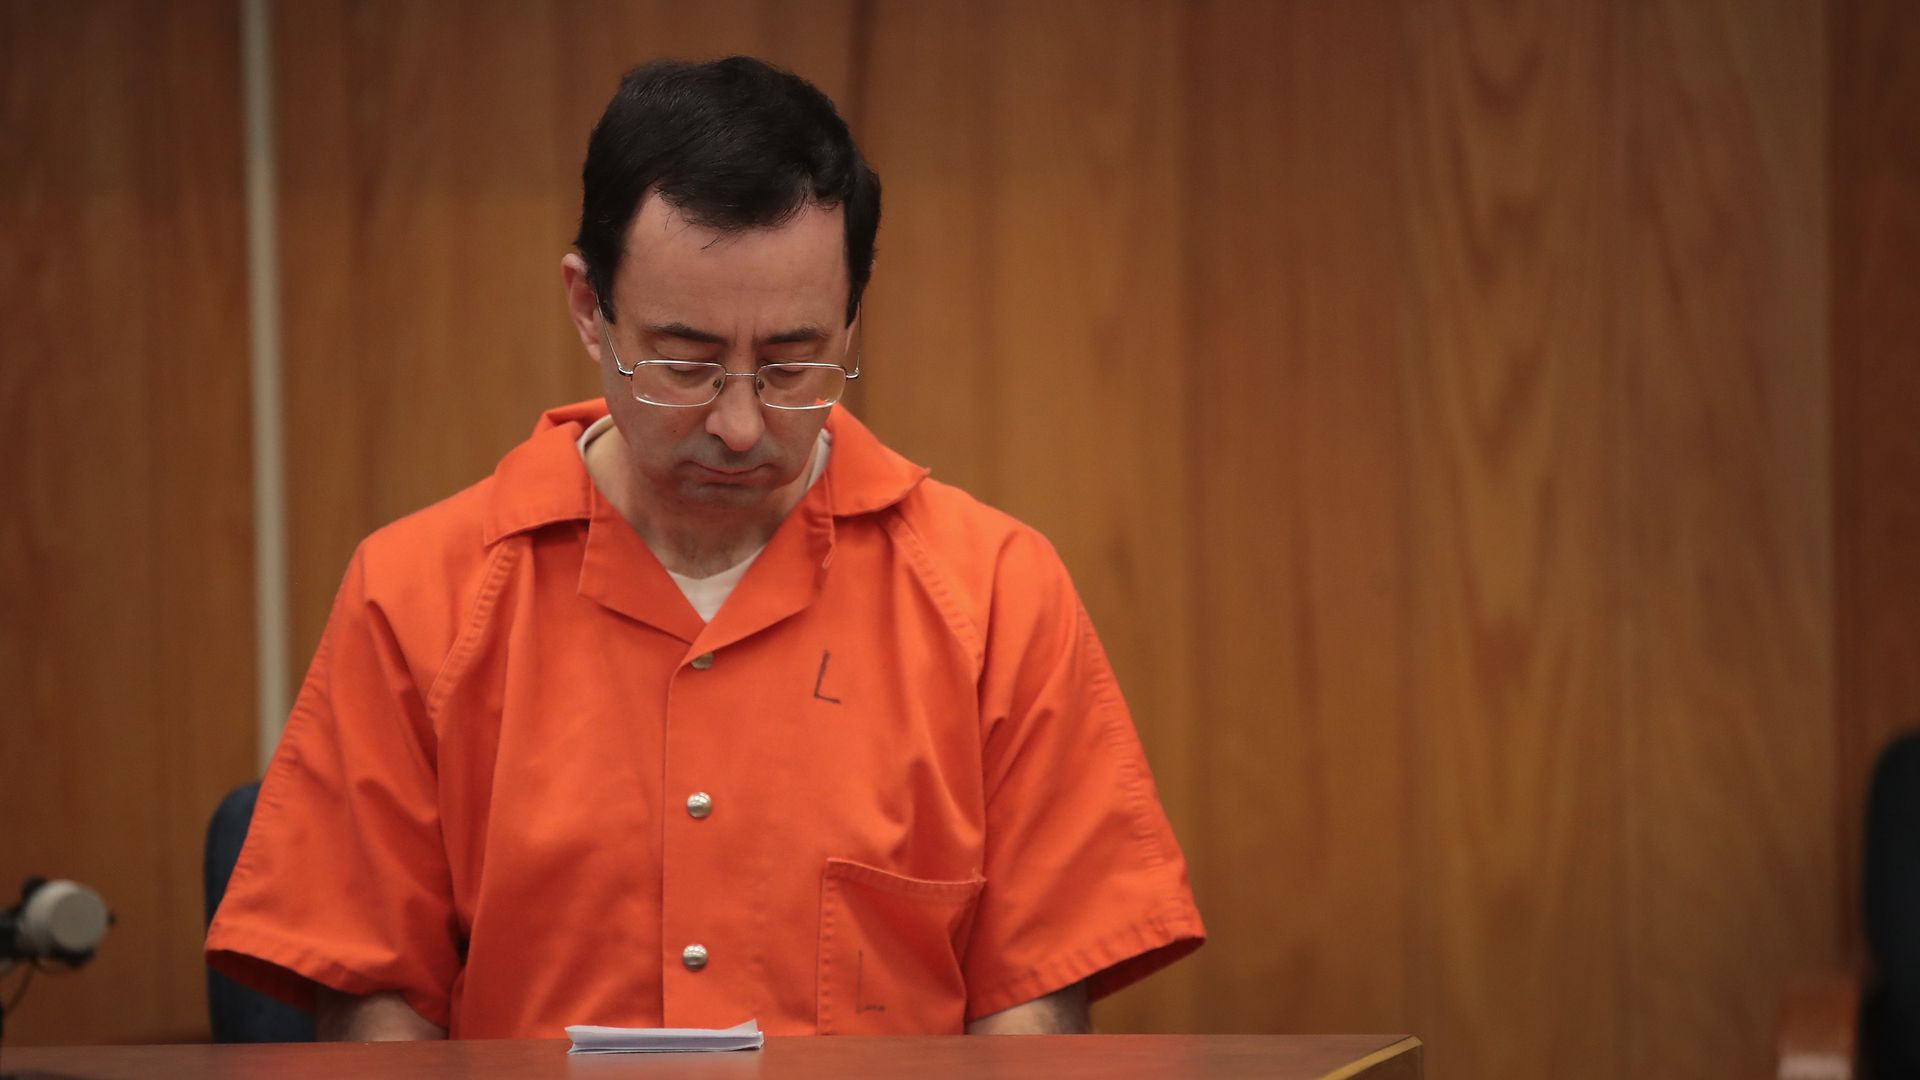 Larry Nassar, in an orange jumpsuit, looks down during his sentencing